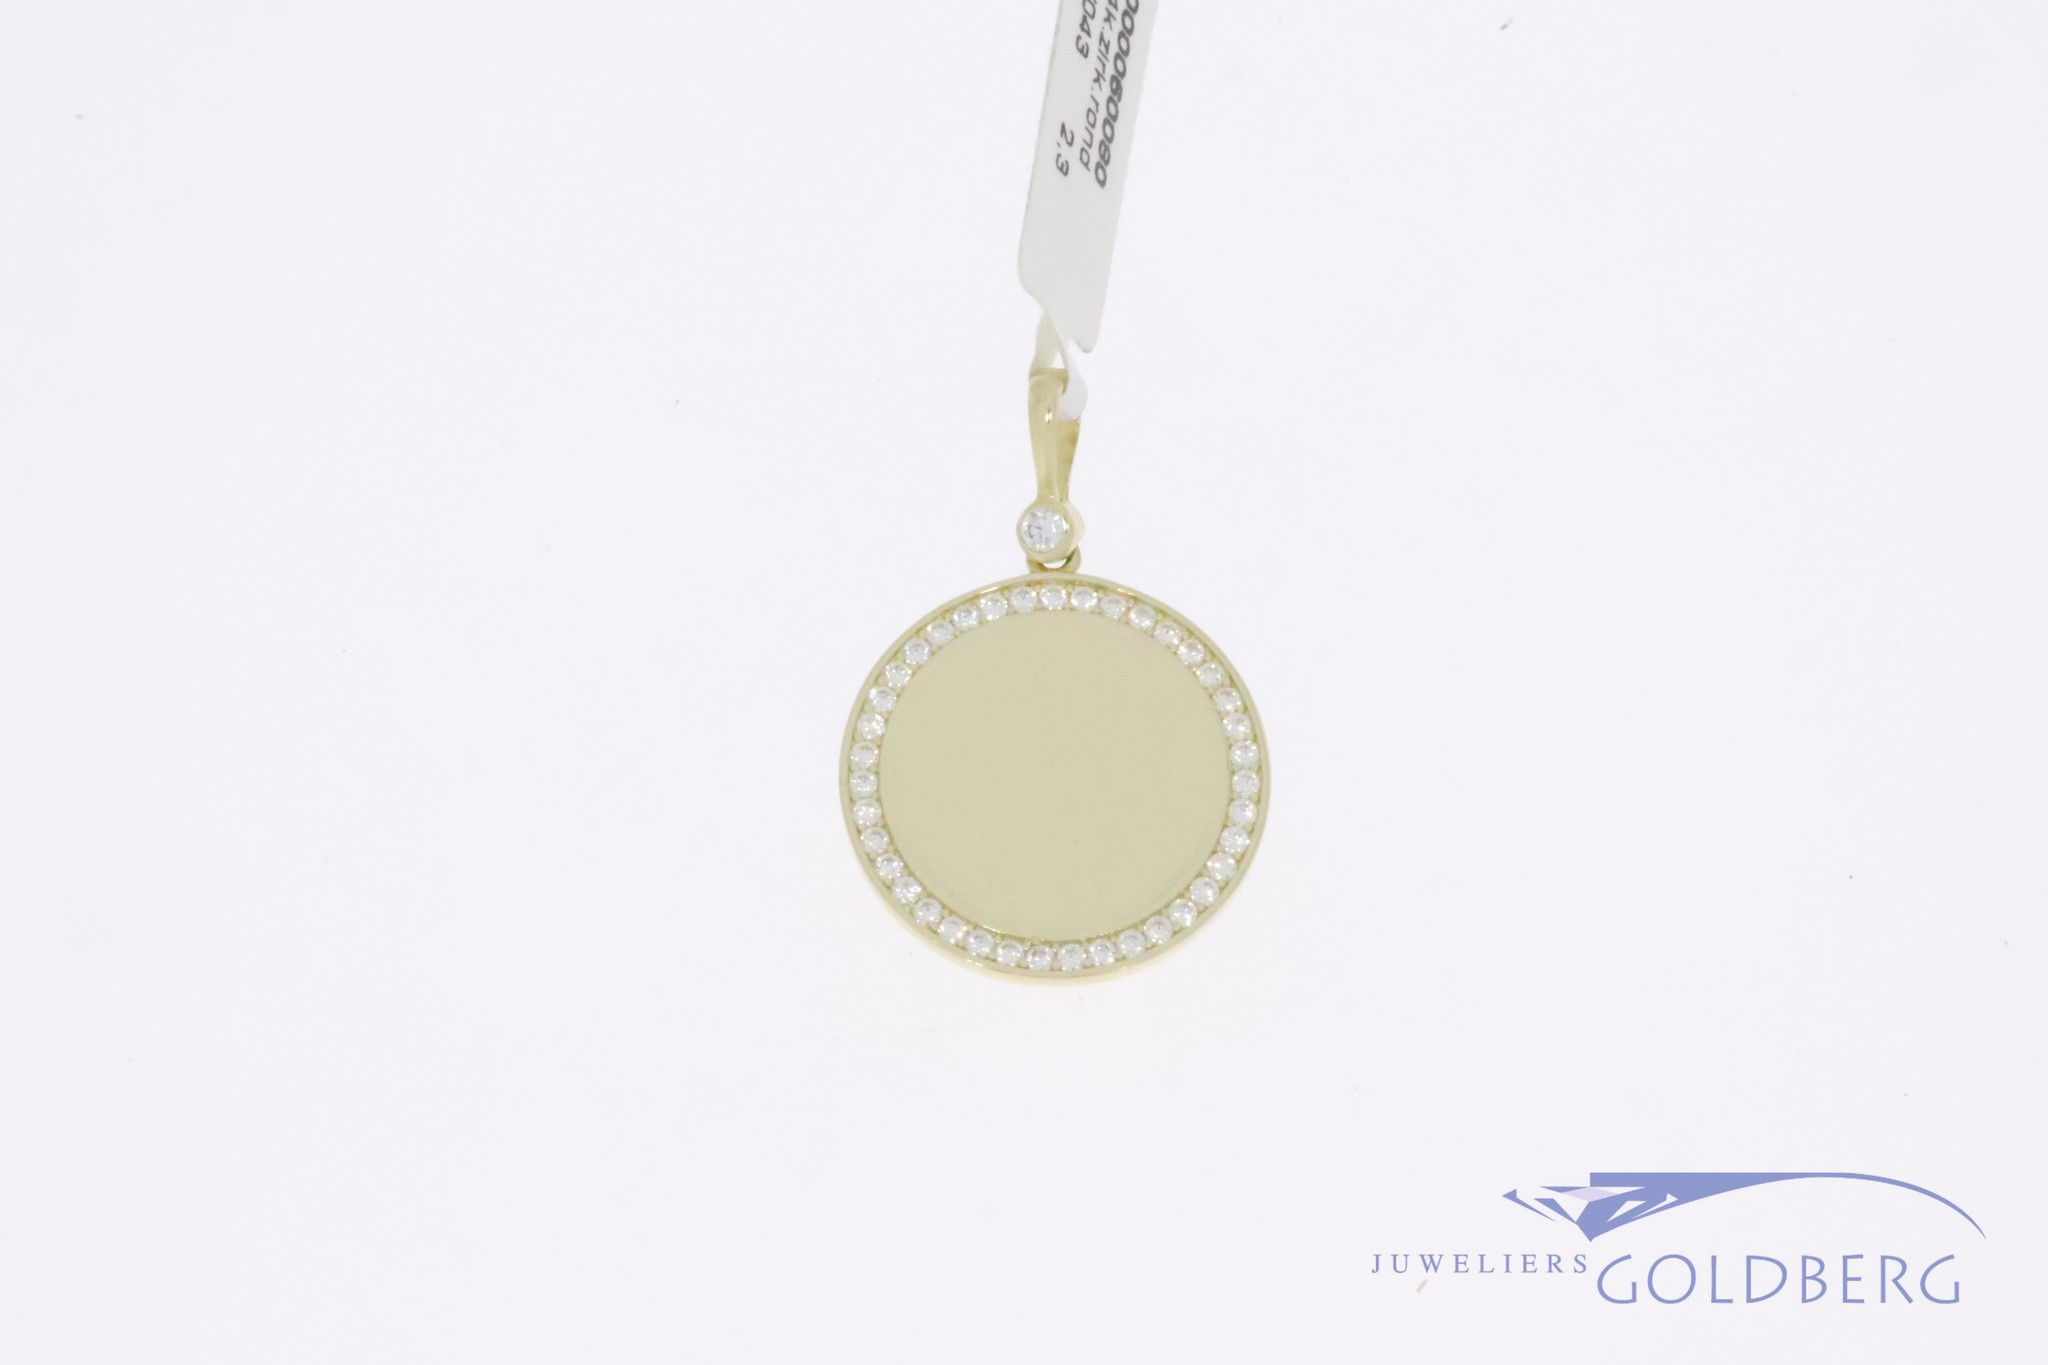 14k gold engravable round 20mm pendant with zirconia's